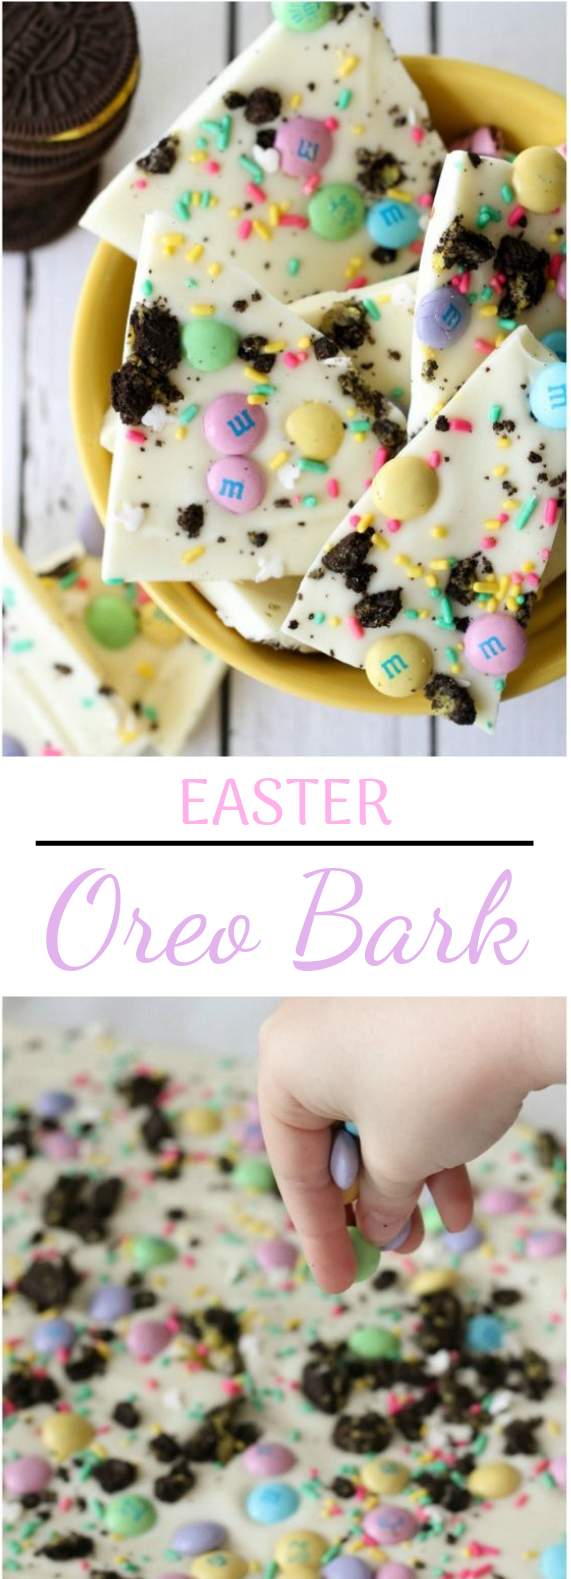 Easter Oreo Bark #desserts #sweettreat